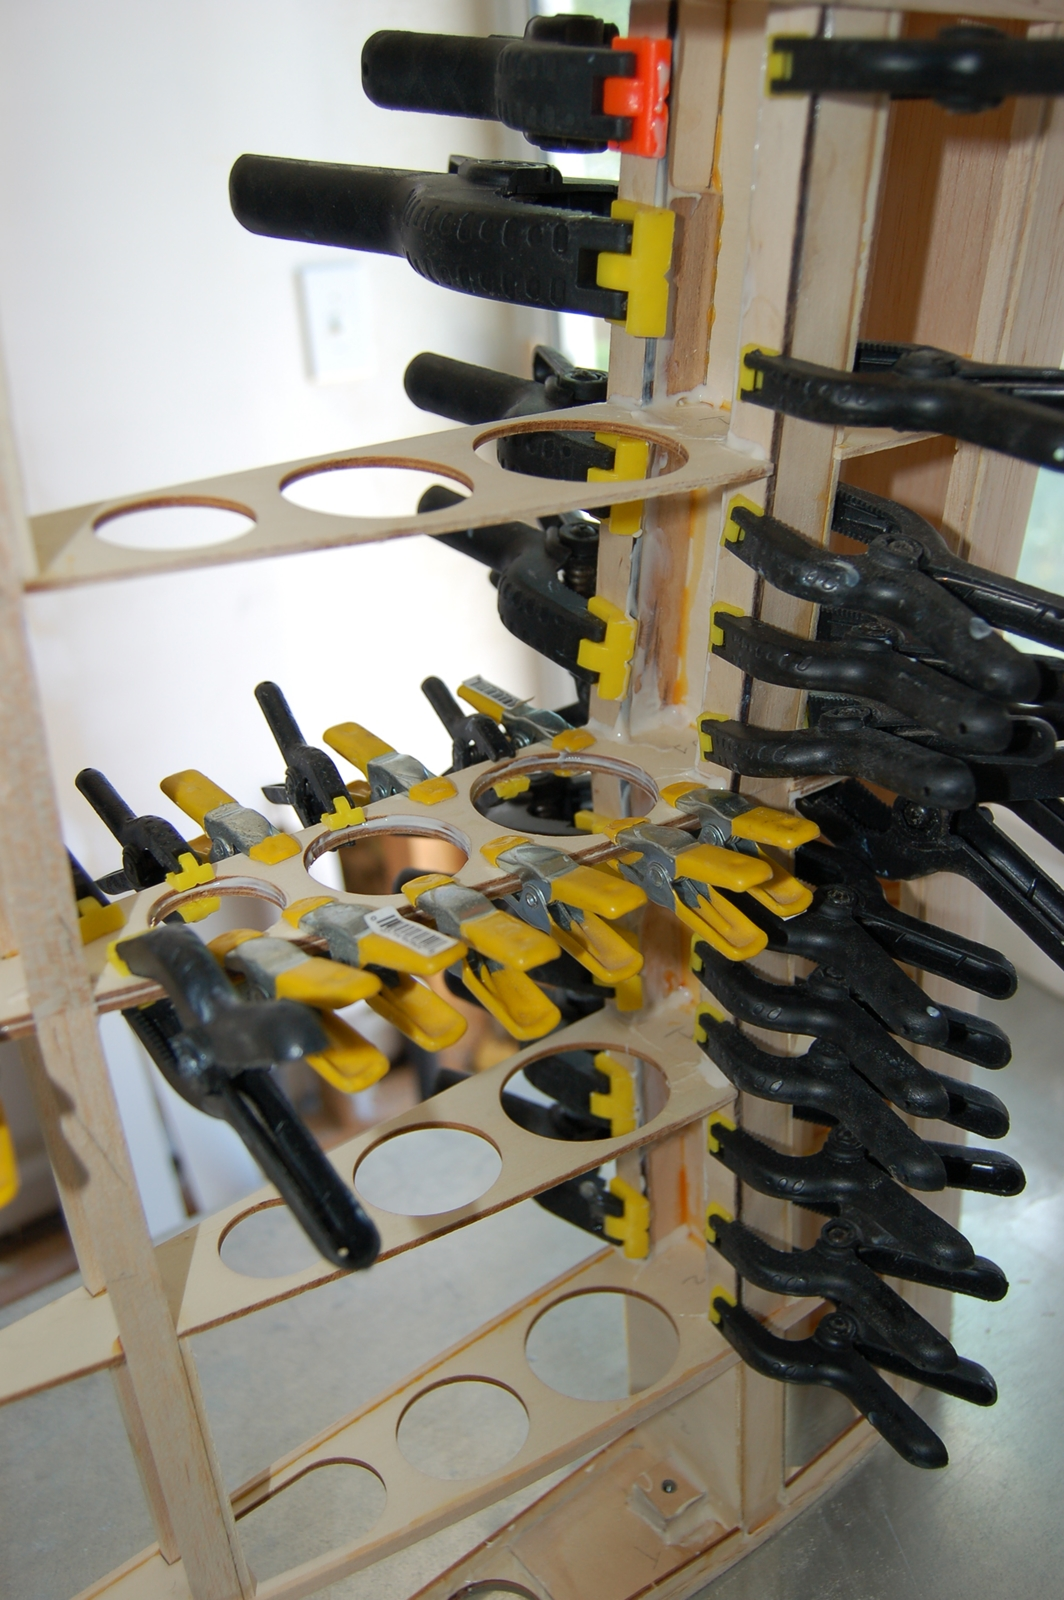 Click image for larger version  Name:m_Center section glue up 004.jpg Views:94 Size:978.5 KB ID:1994125